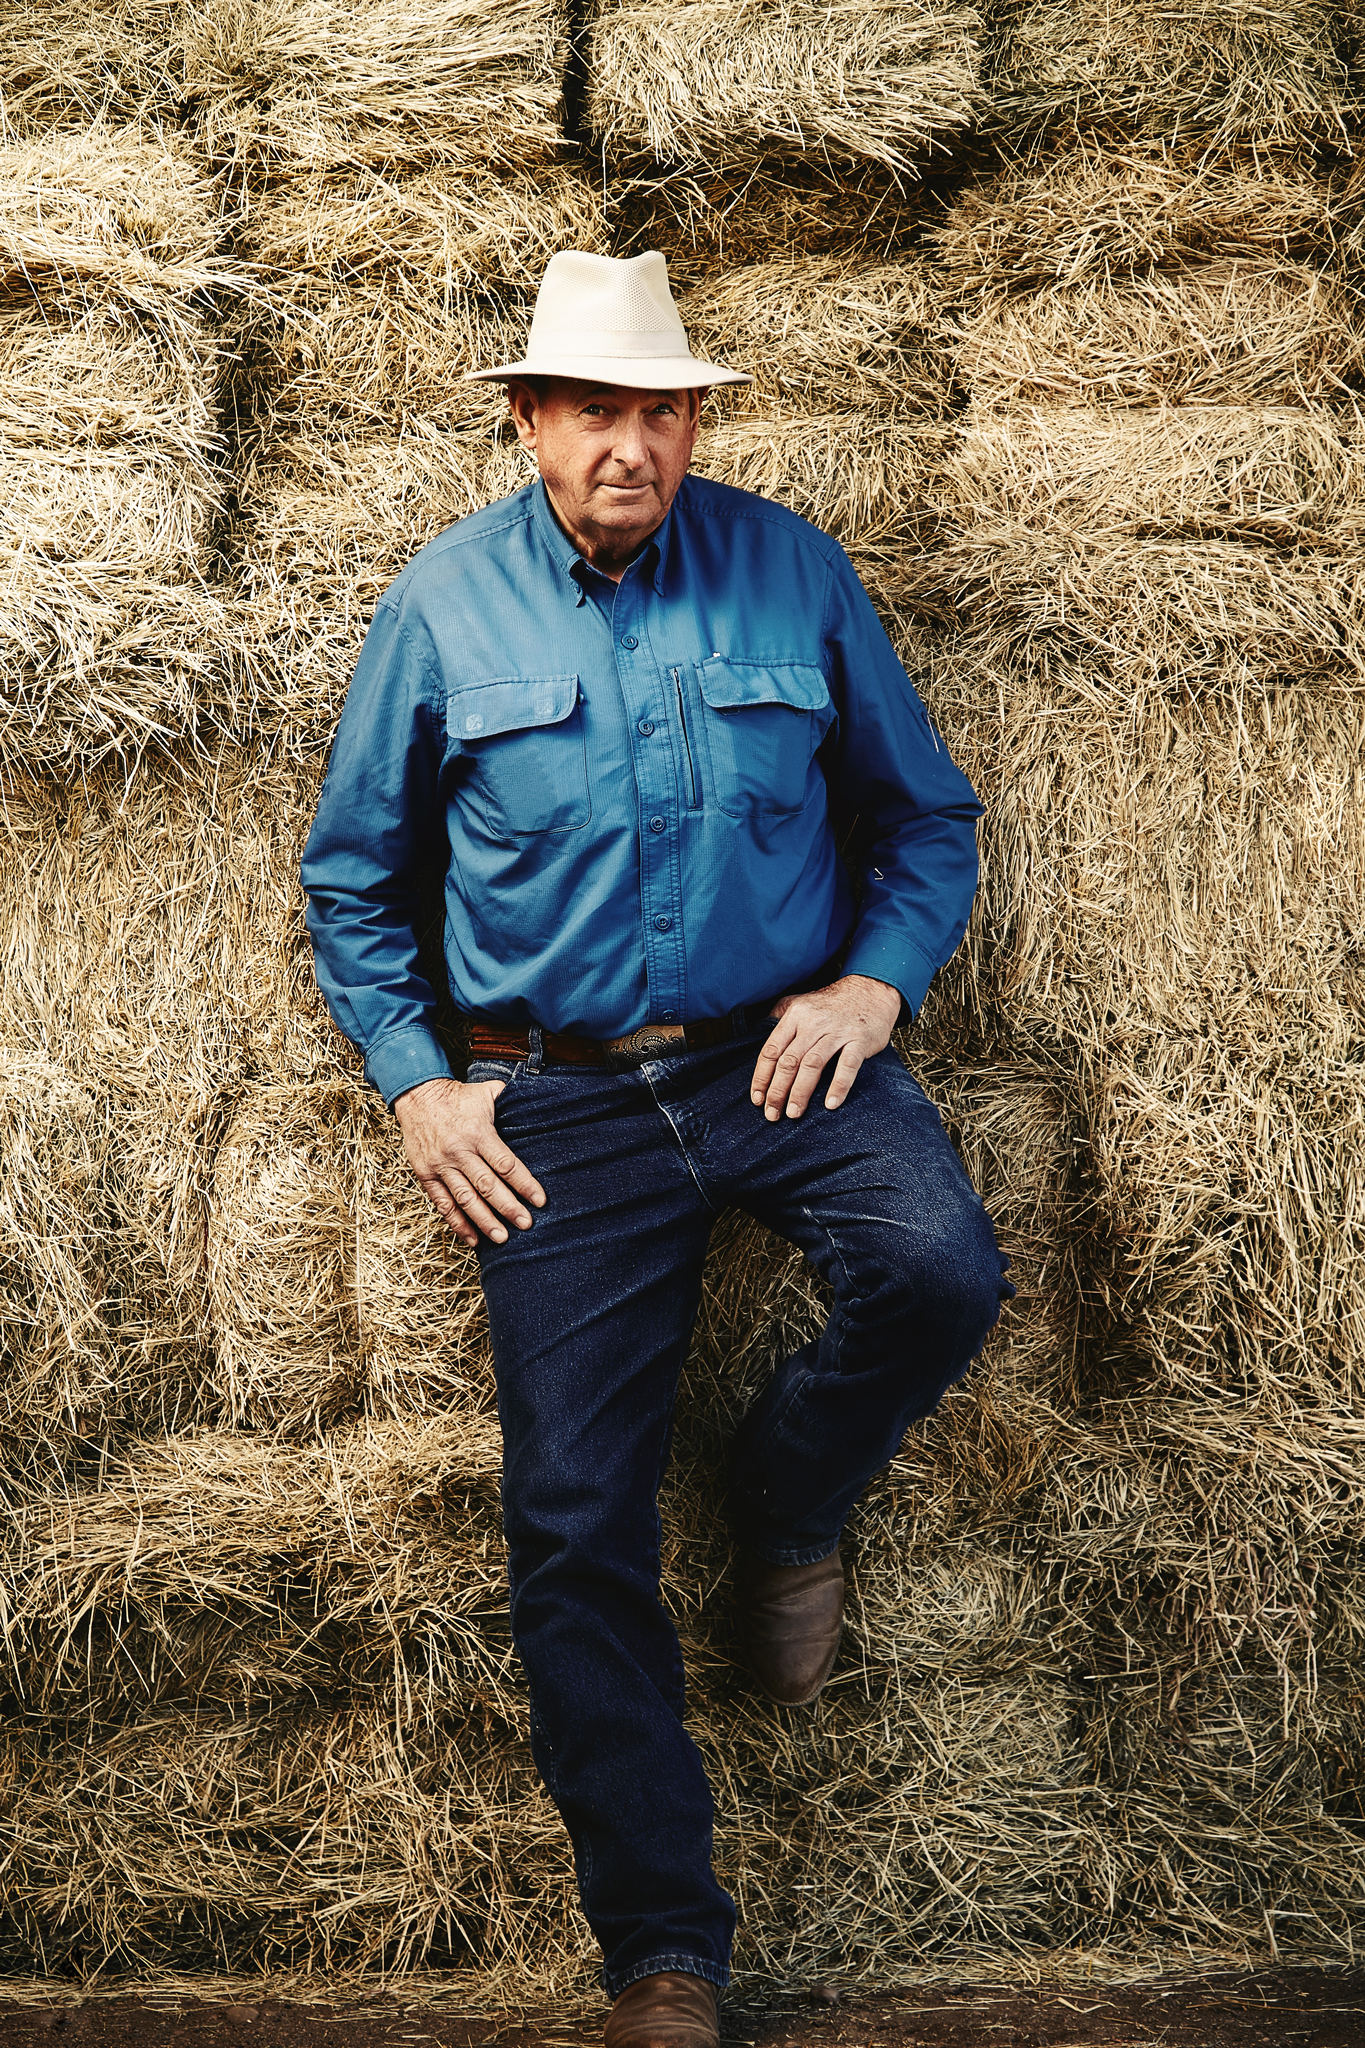 Phoenix Commercial Portrait Photographer - FarmLife Magazine